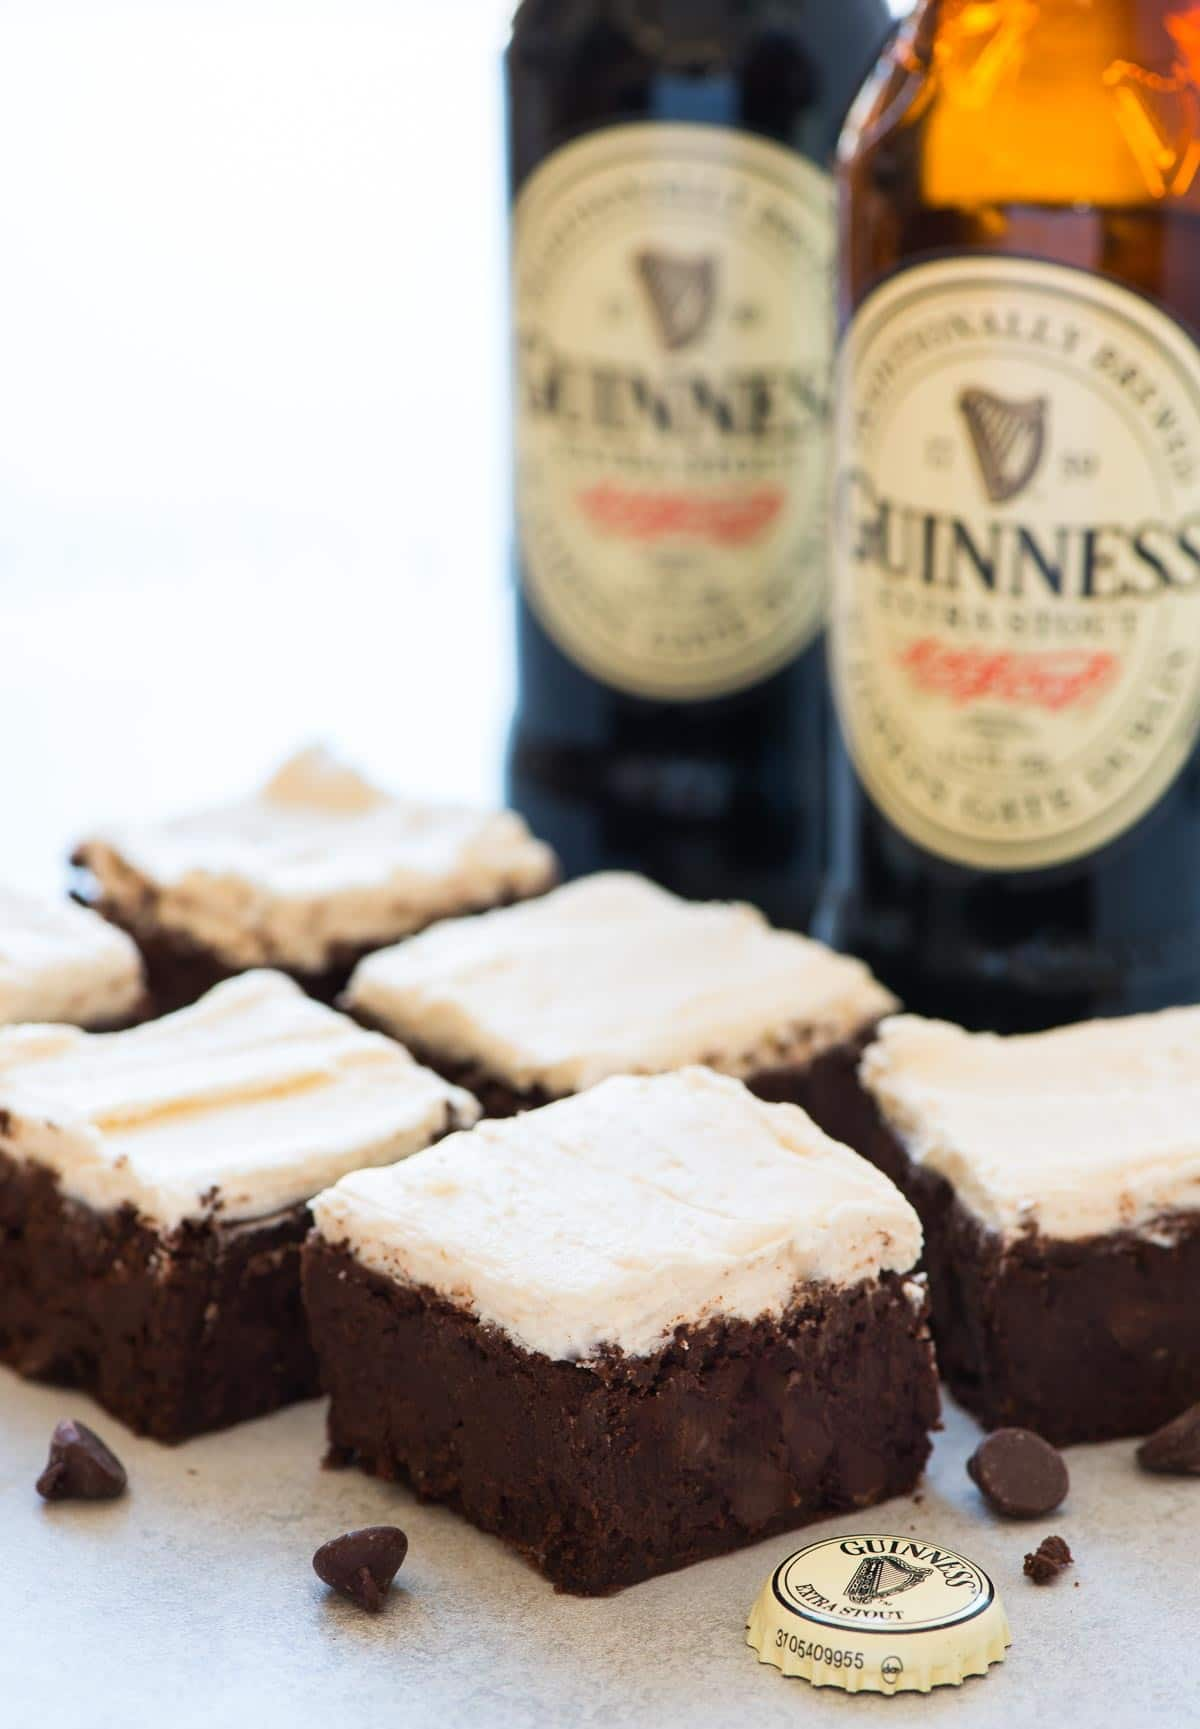 Guinness Brownies – Moist, chewy brownies. Super decadent with creamy Guinness frosting. If you've never had beer brownies before, you HAVE to try this stout brownie recipe! Recipe at wellplated.com   @wellplated